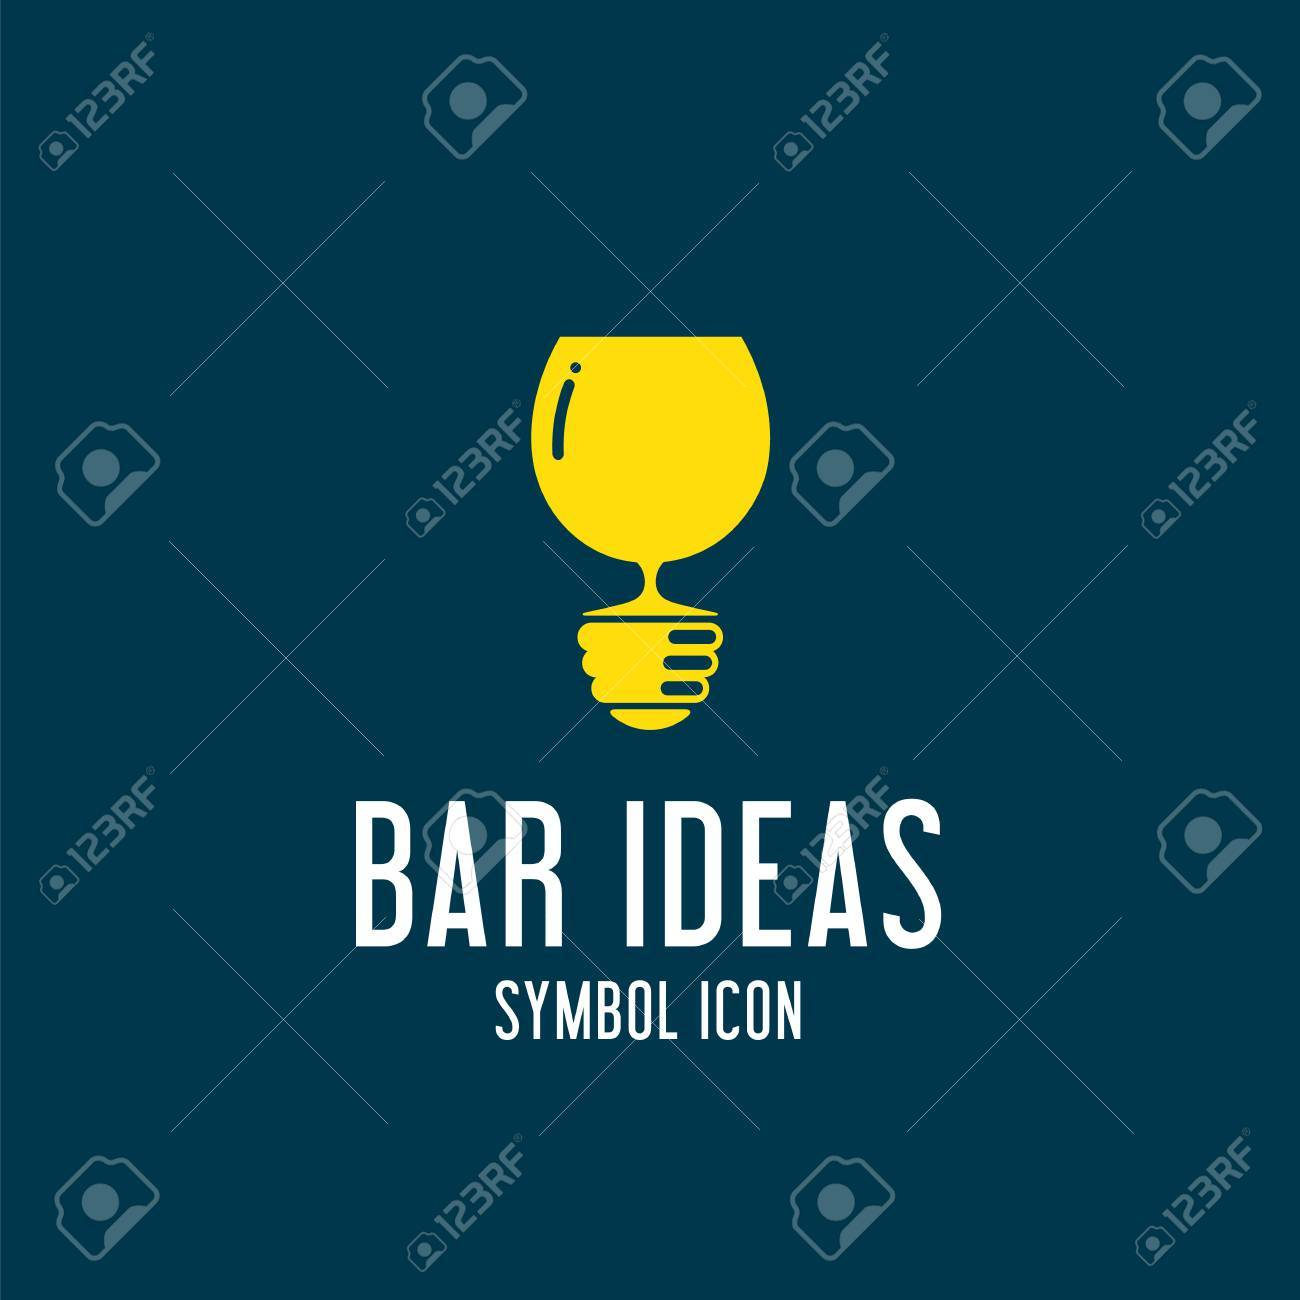 Bar Ideen Bar Ideeën Vector Concept Symbol Icon Of Logo Template